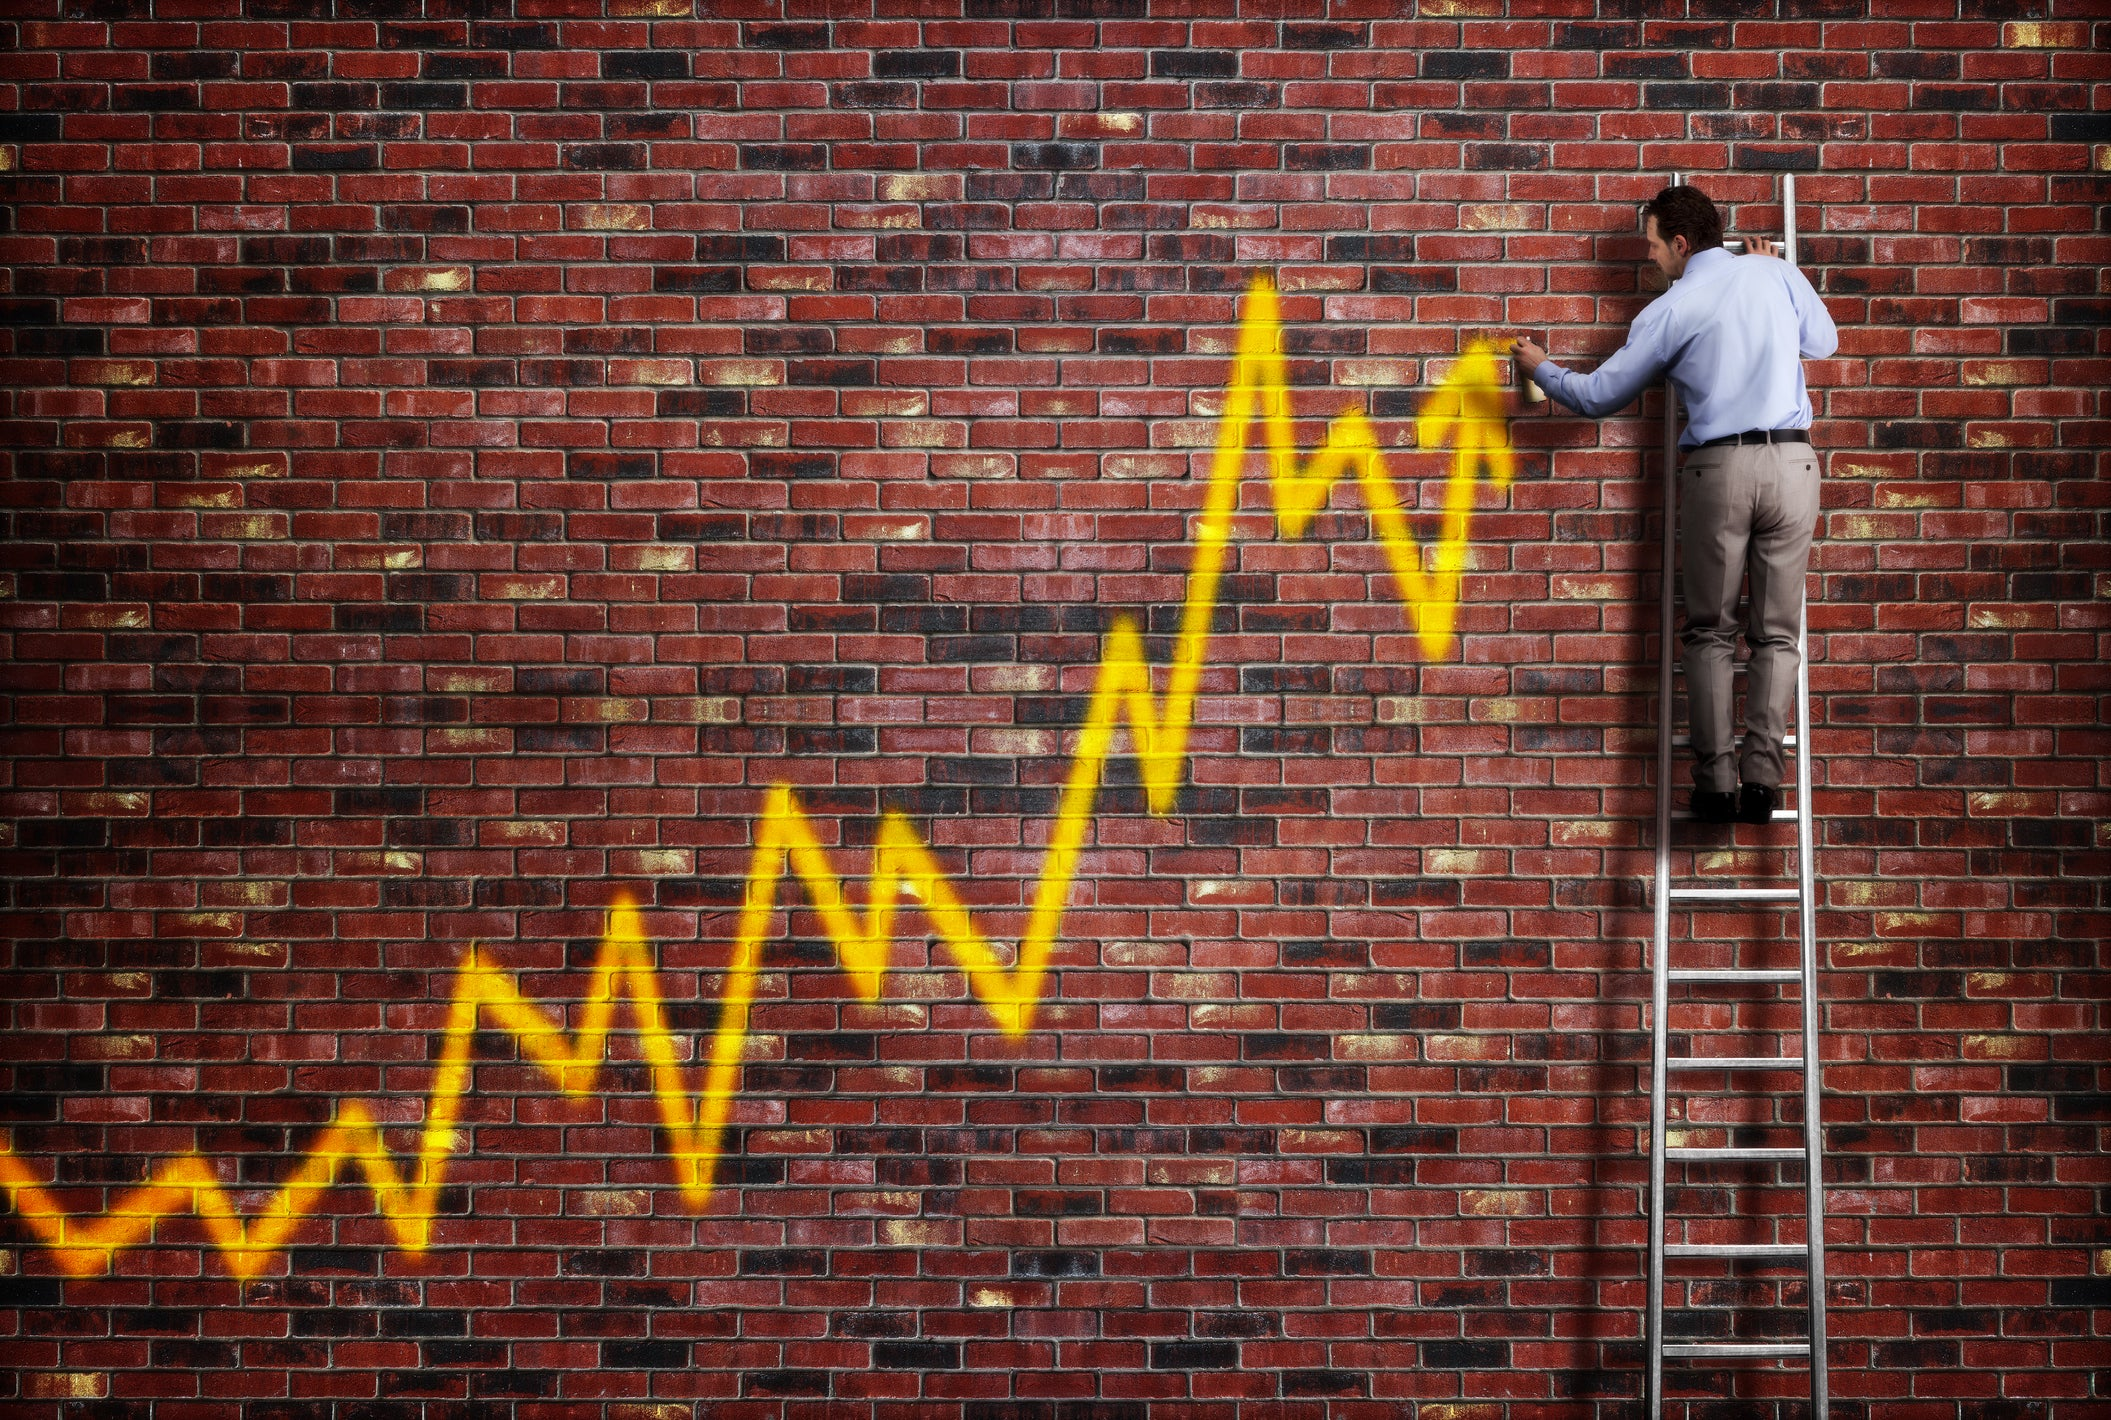 Man on ladder drawing a chart on a brick wall showing volatile stock gains.